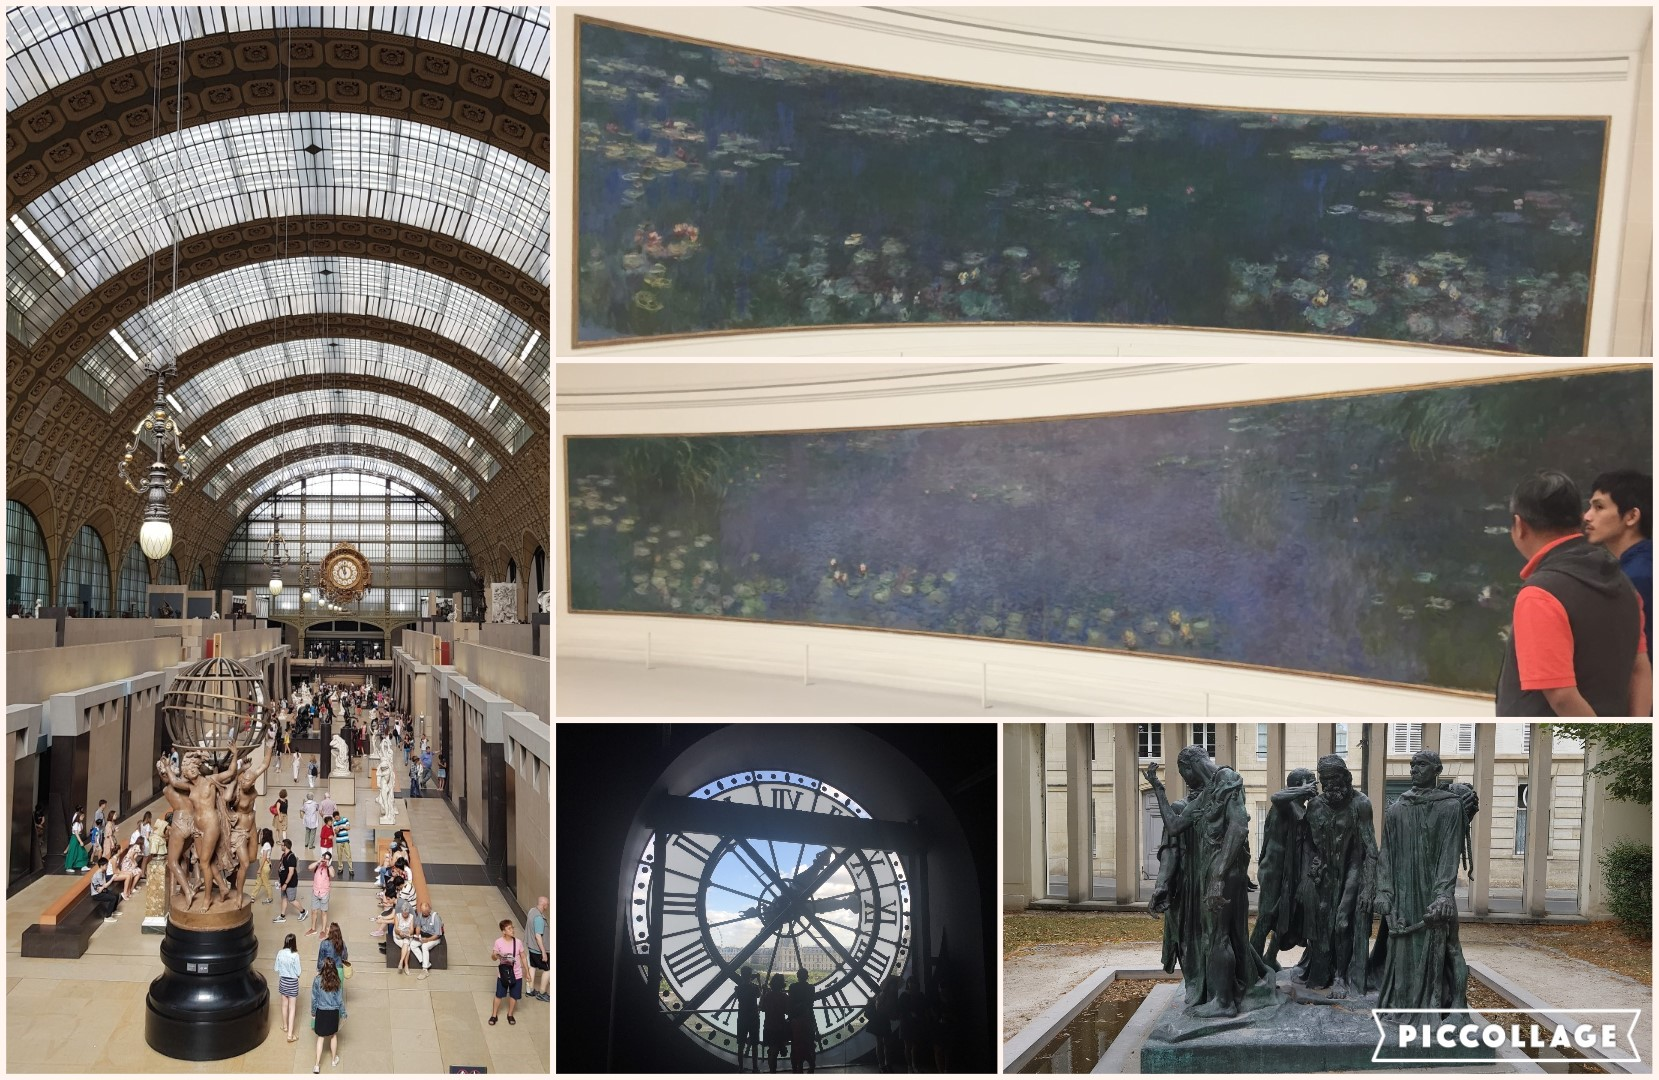 Collage Paris museums 2